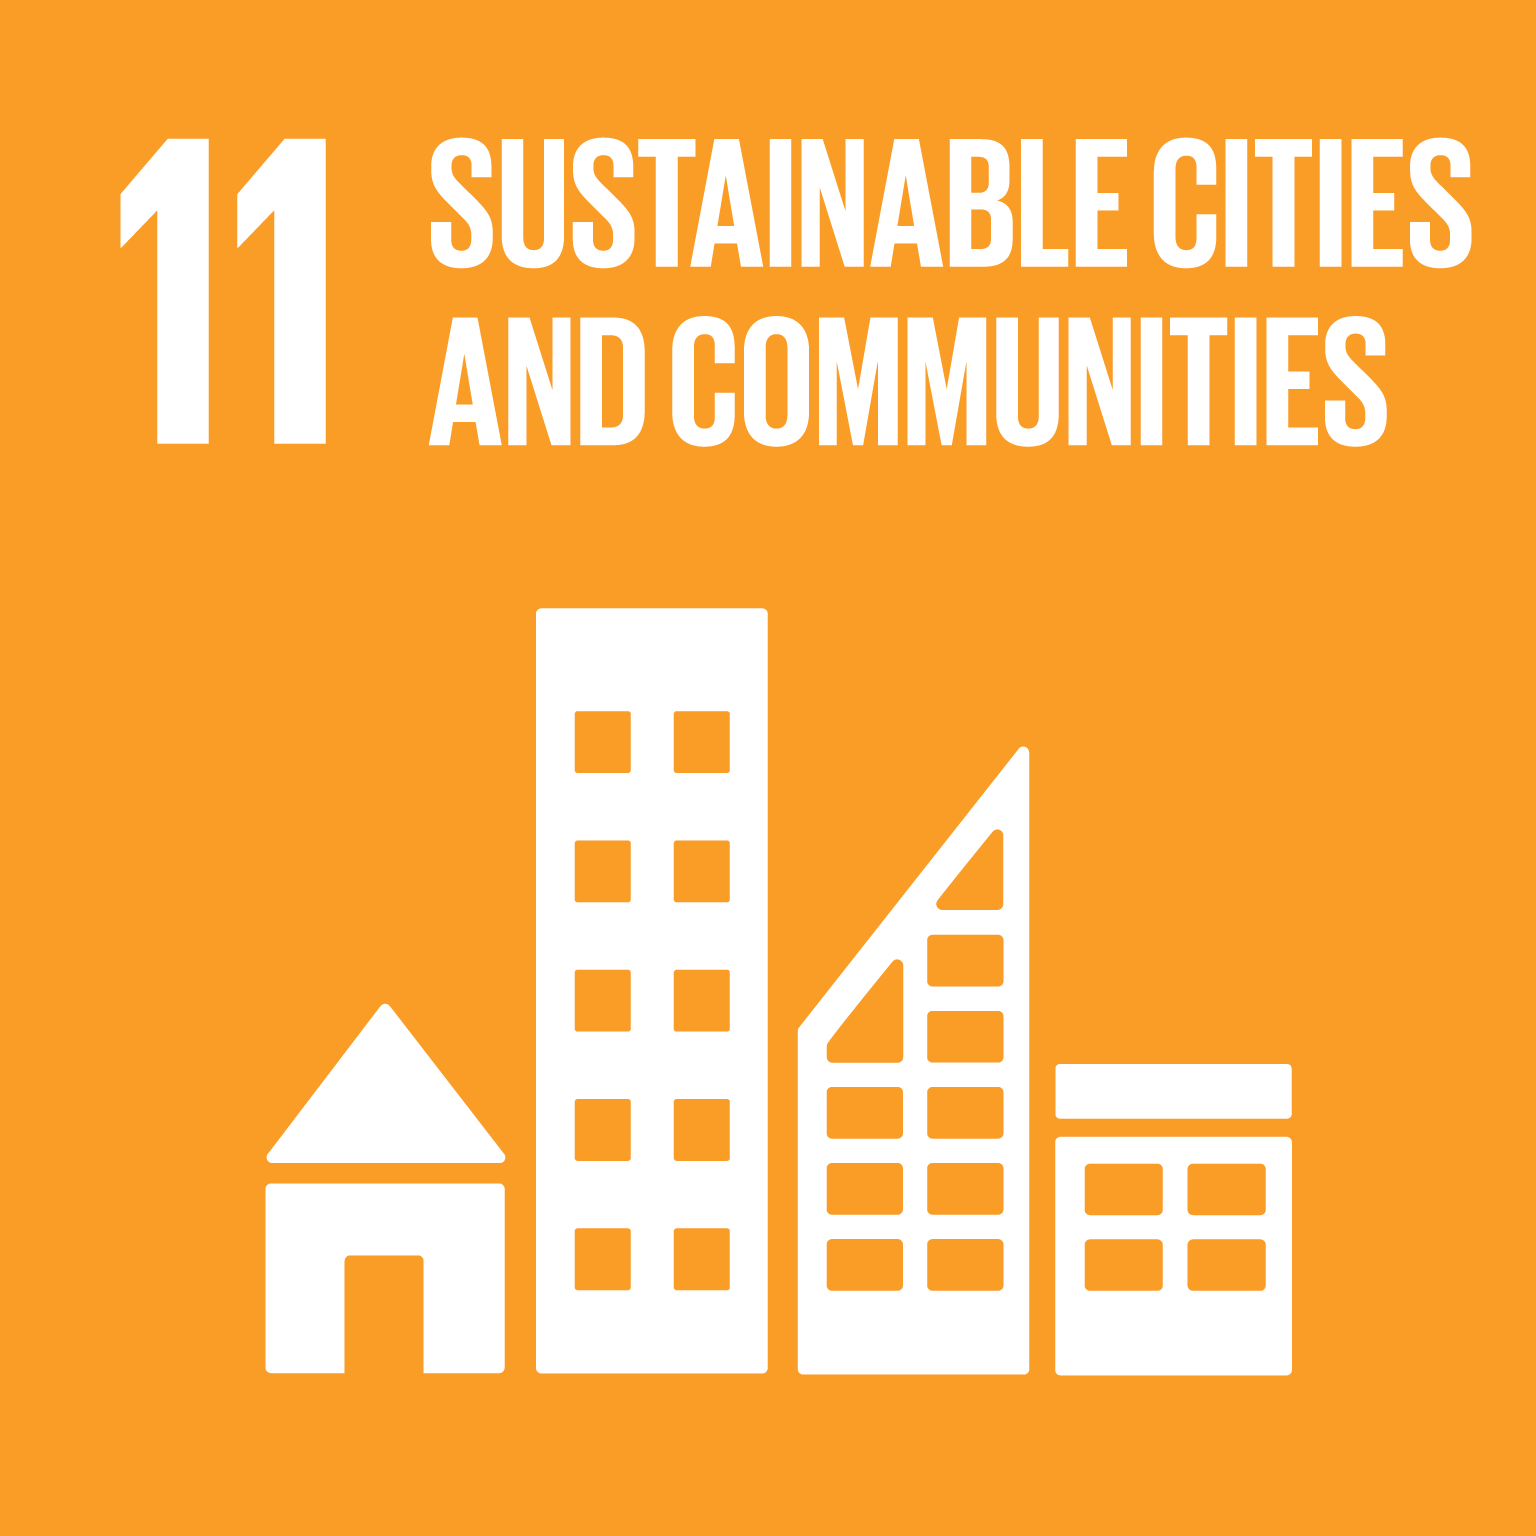 Representative image of SDG sustainable cities and communities